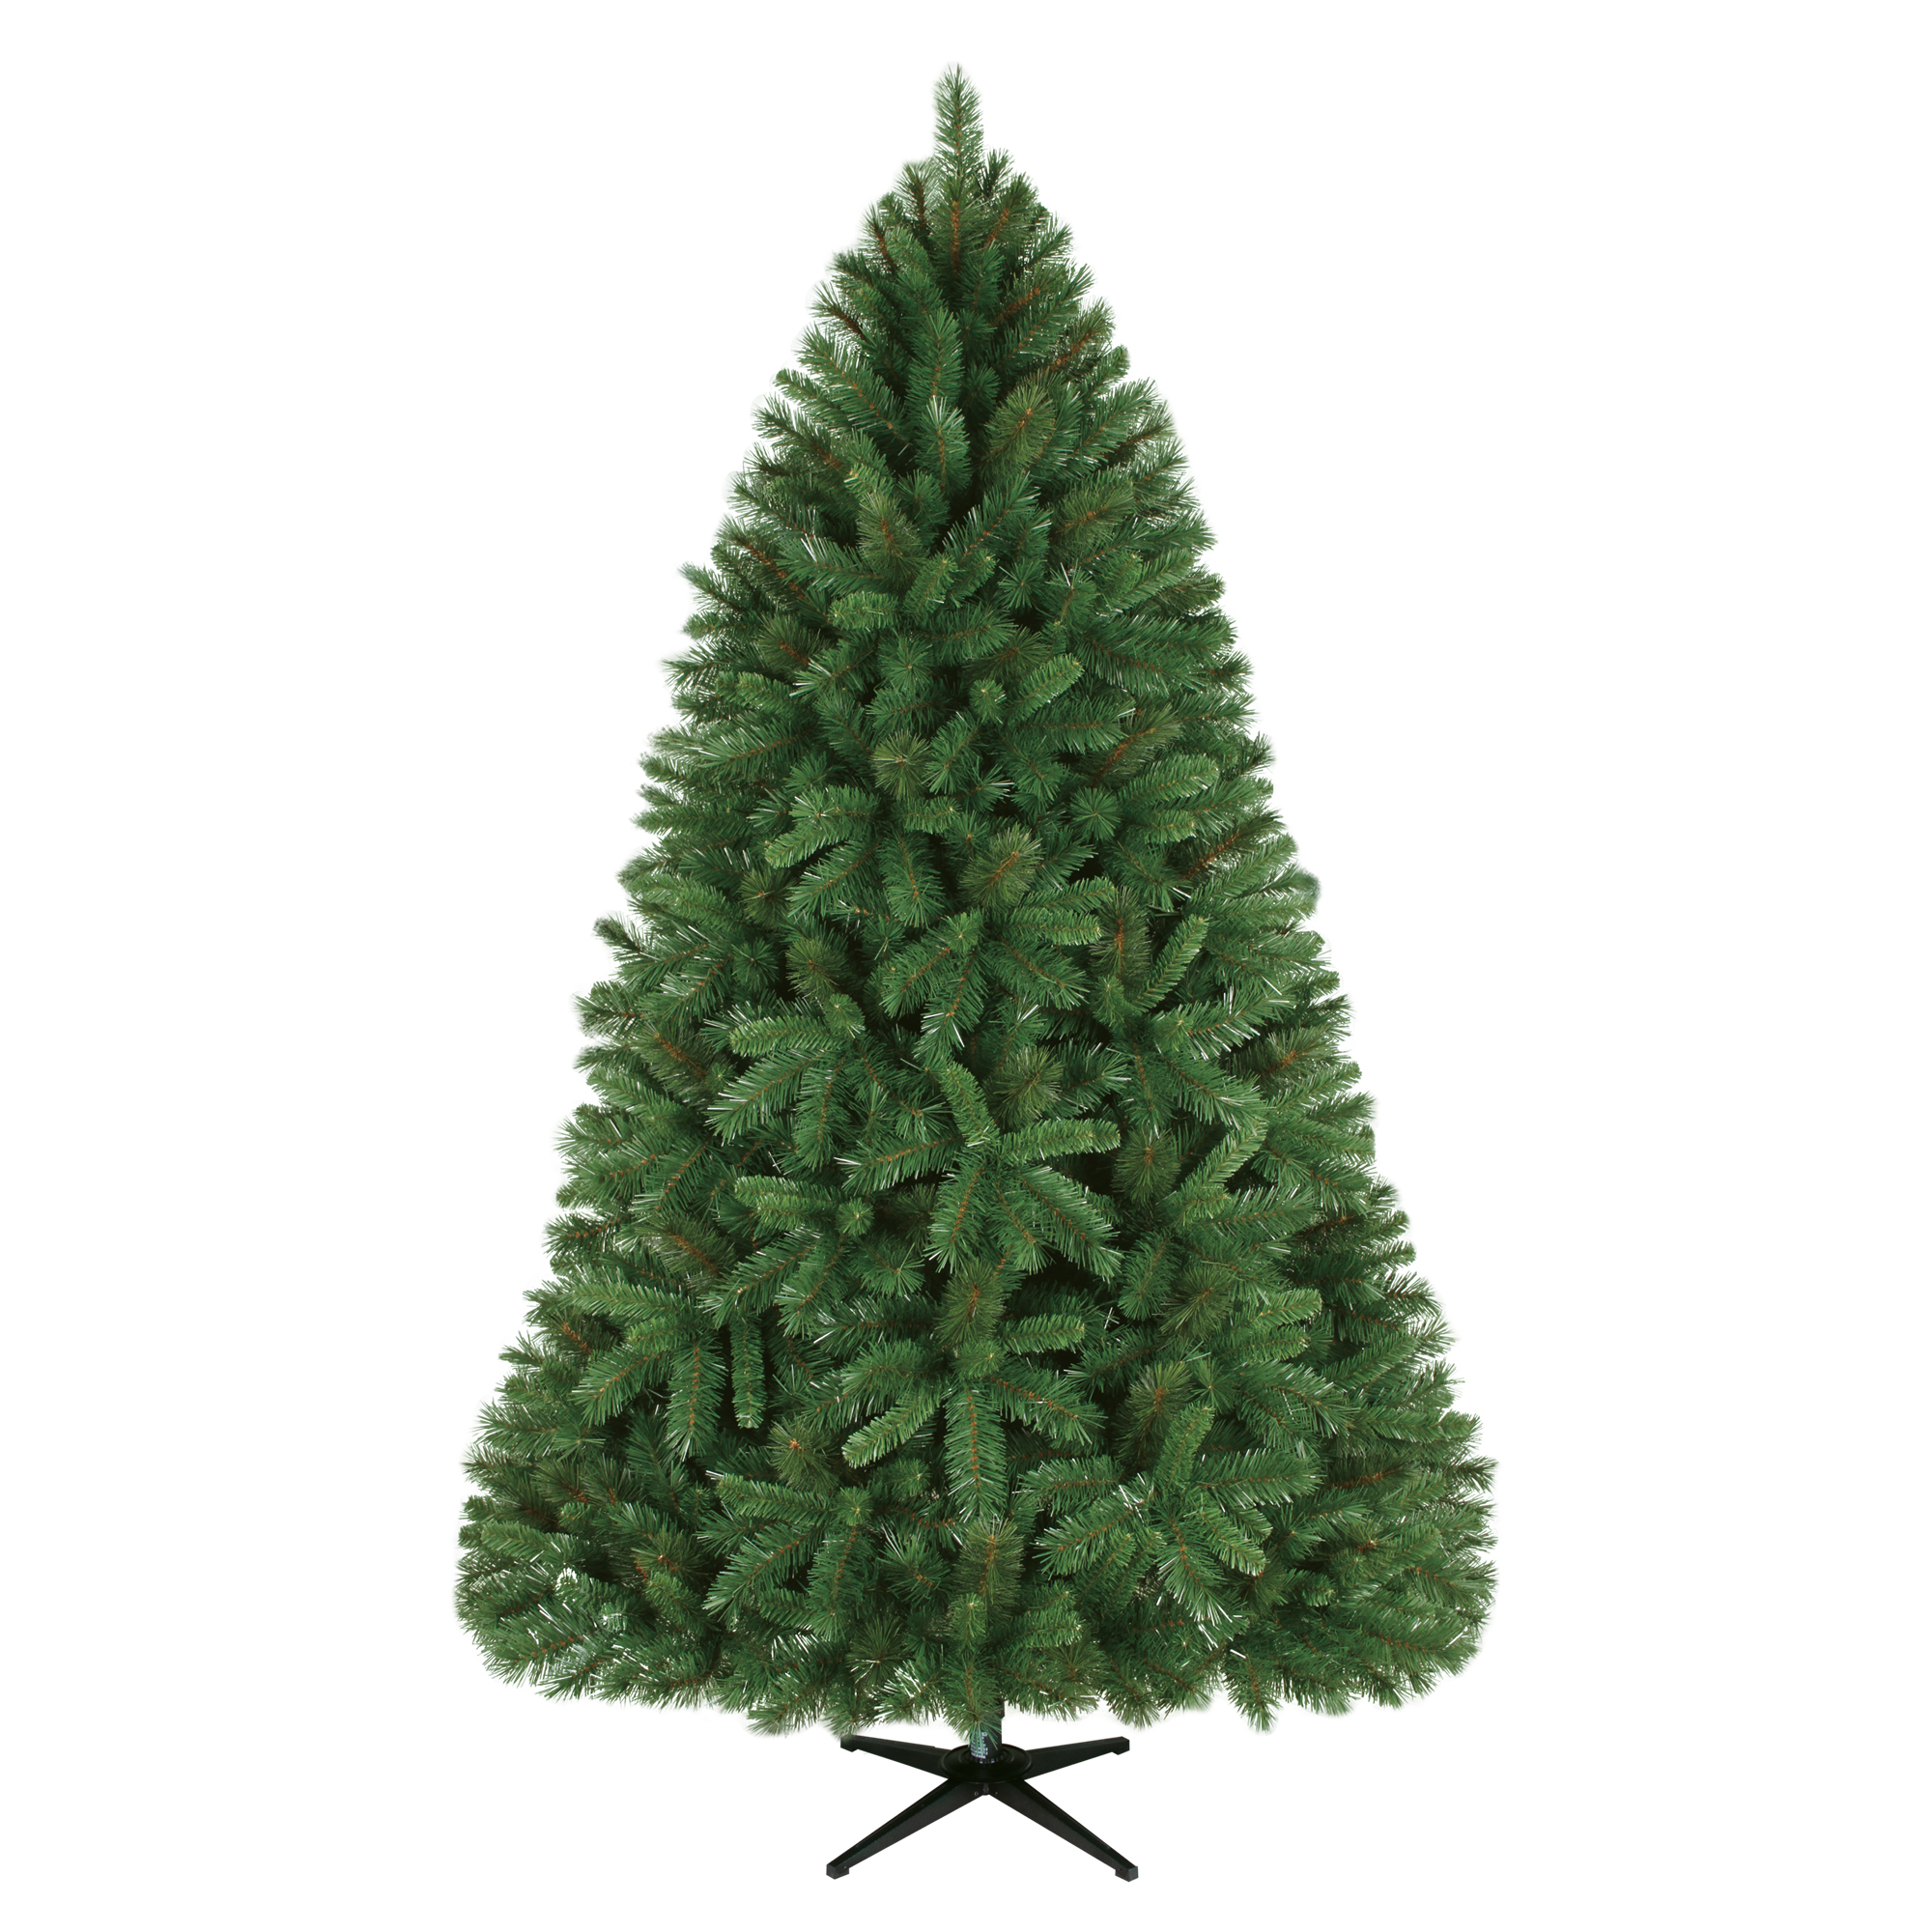 Holiday Time 7.5ft Unlit Donner Fir Artificial Christmas Tree - Green